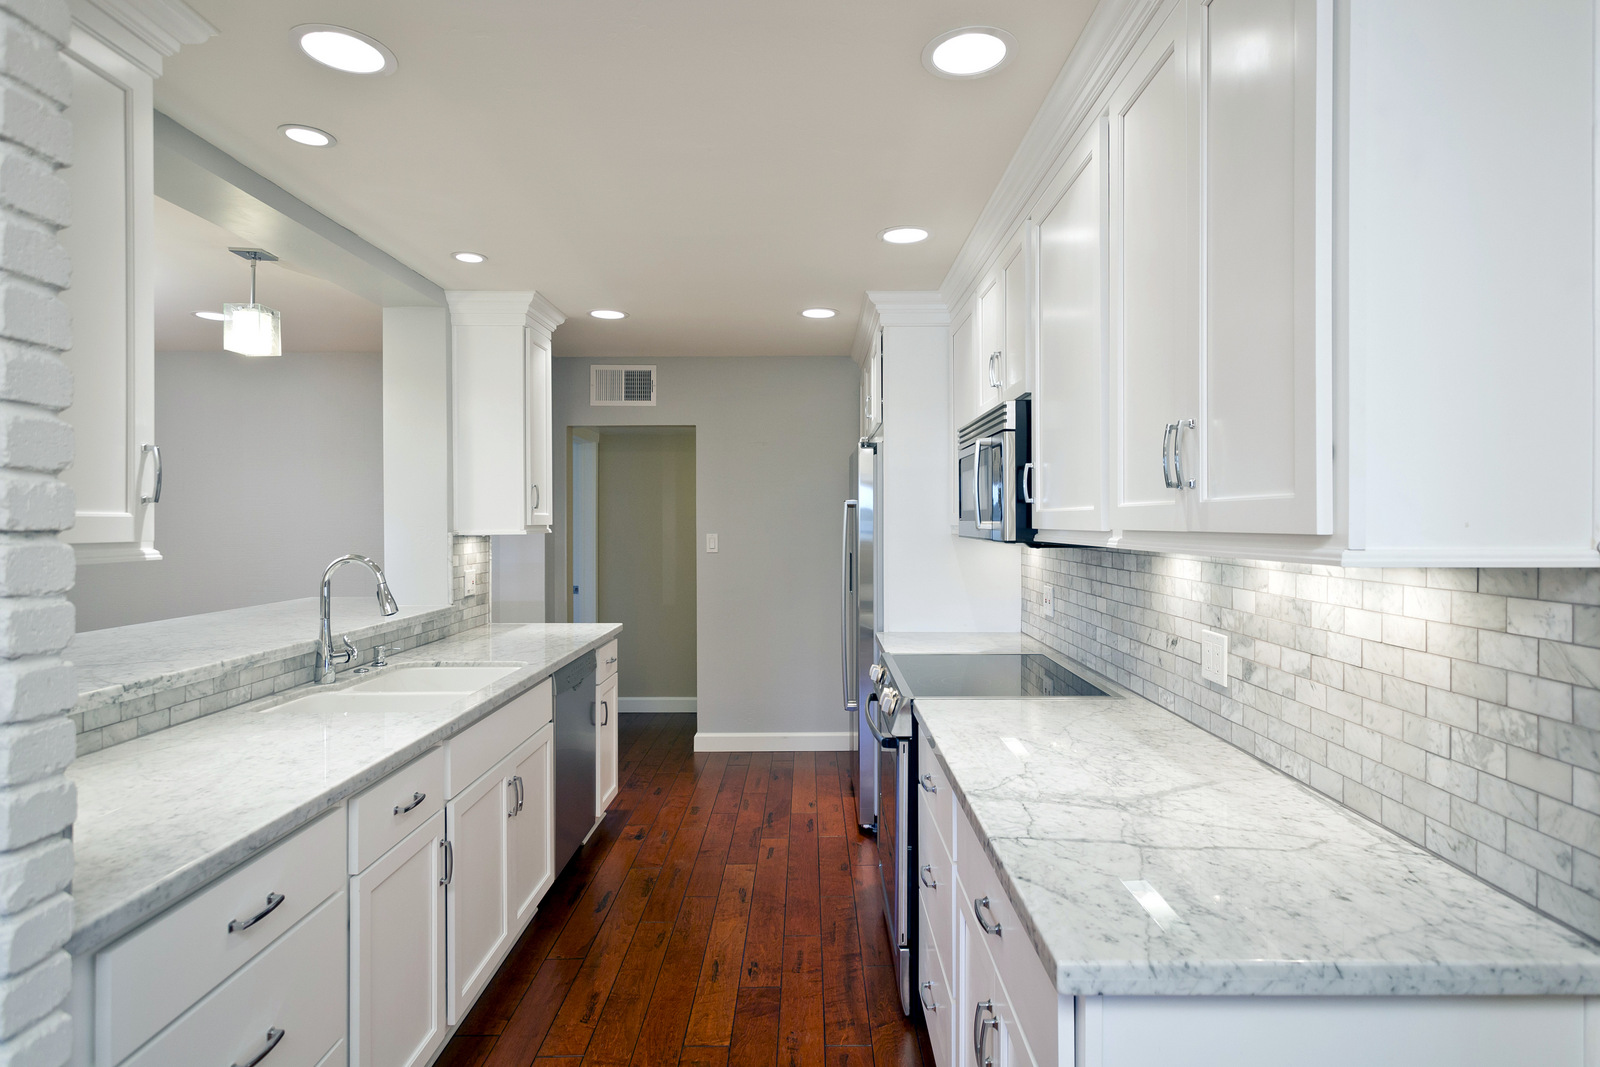 kitchen az cabinets modern backsplash colors phoenix and bathroom remodeling contractor in white